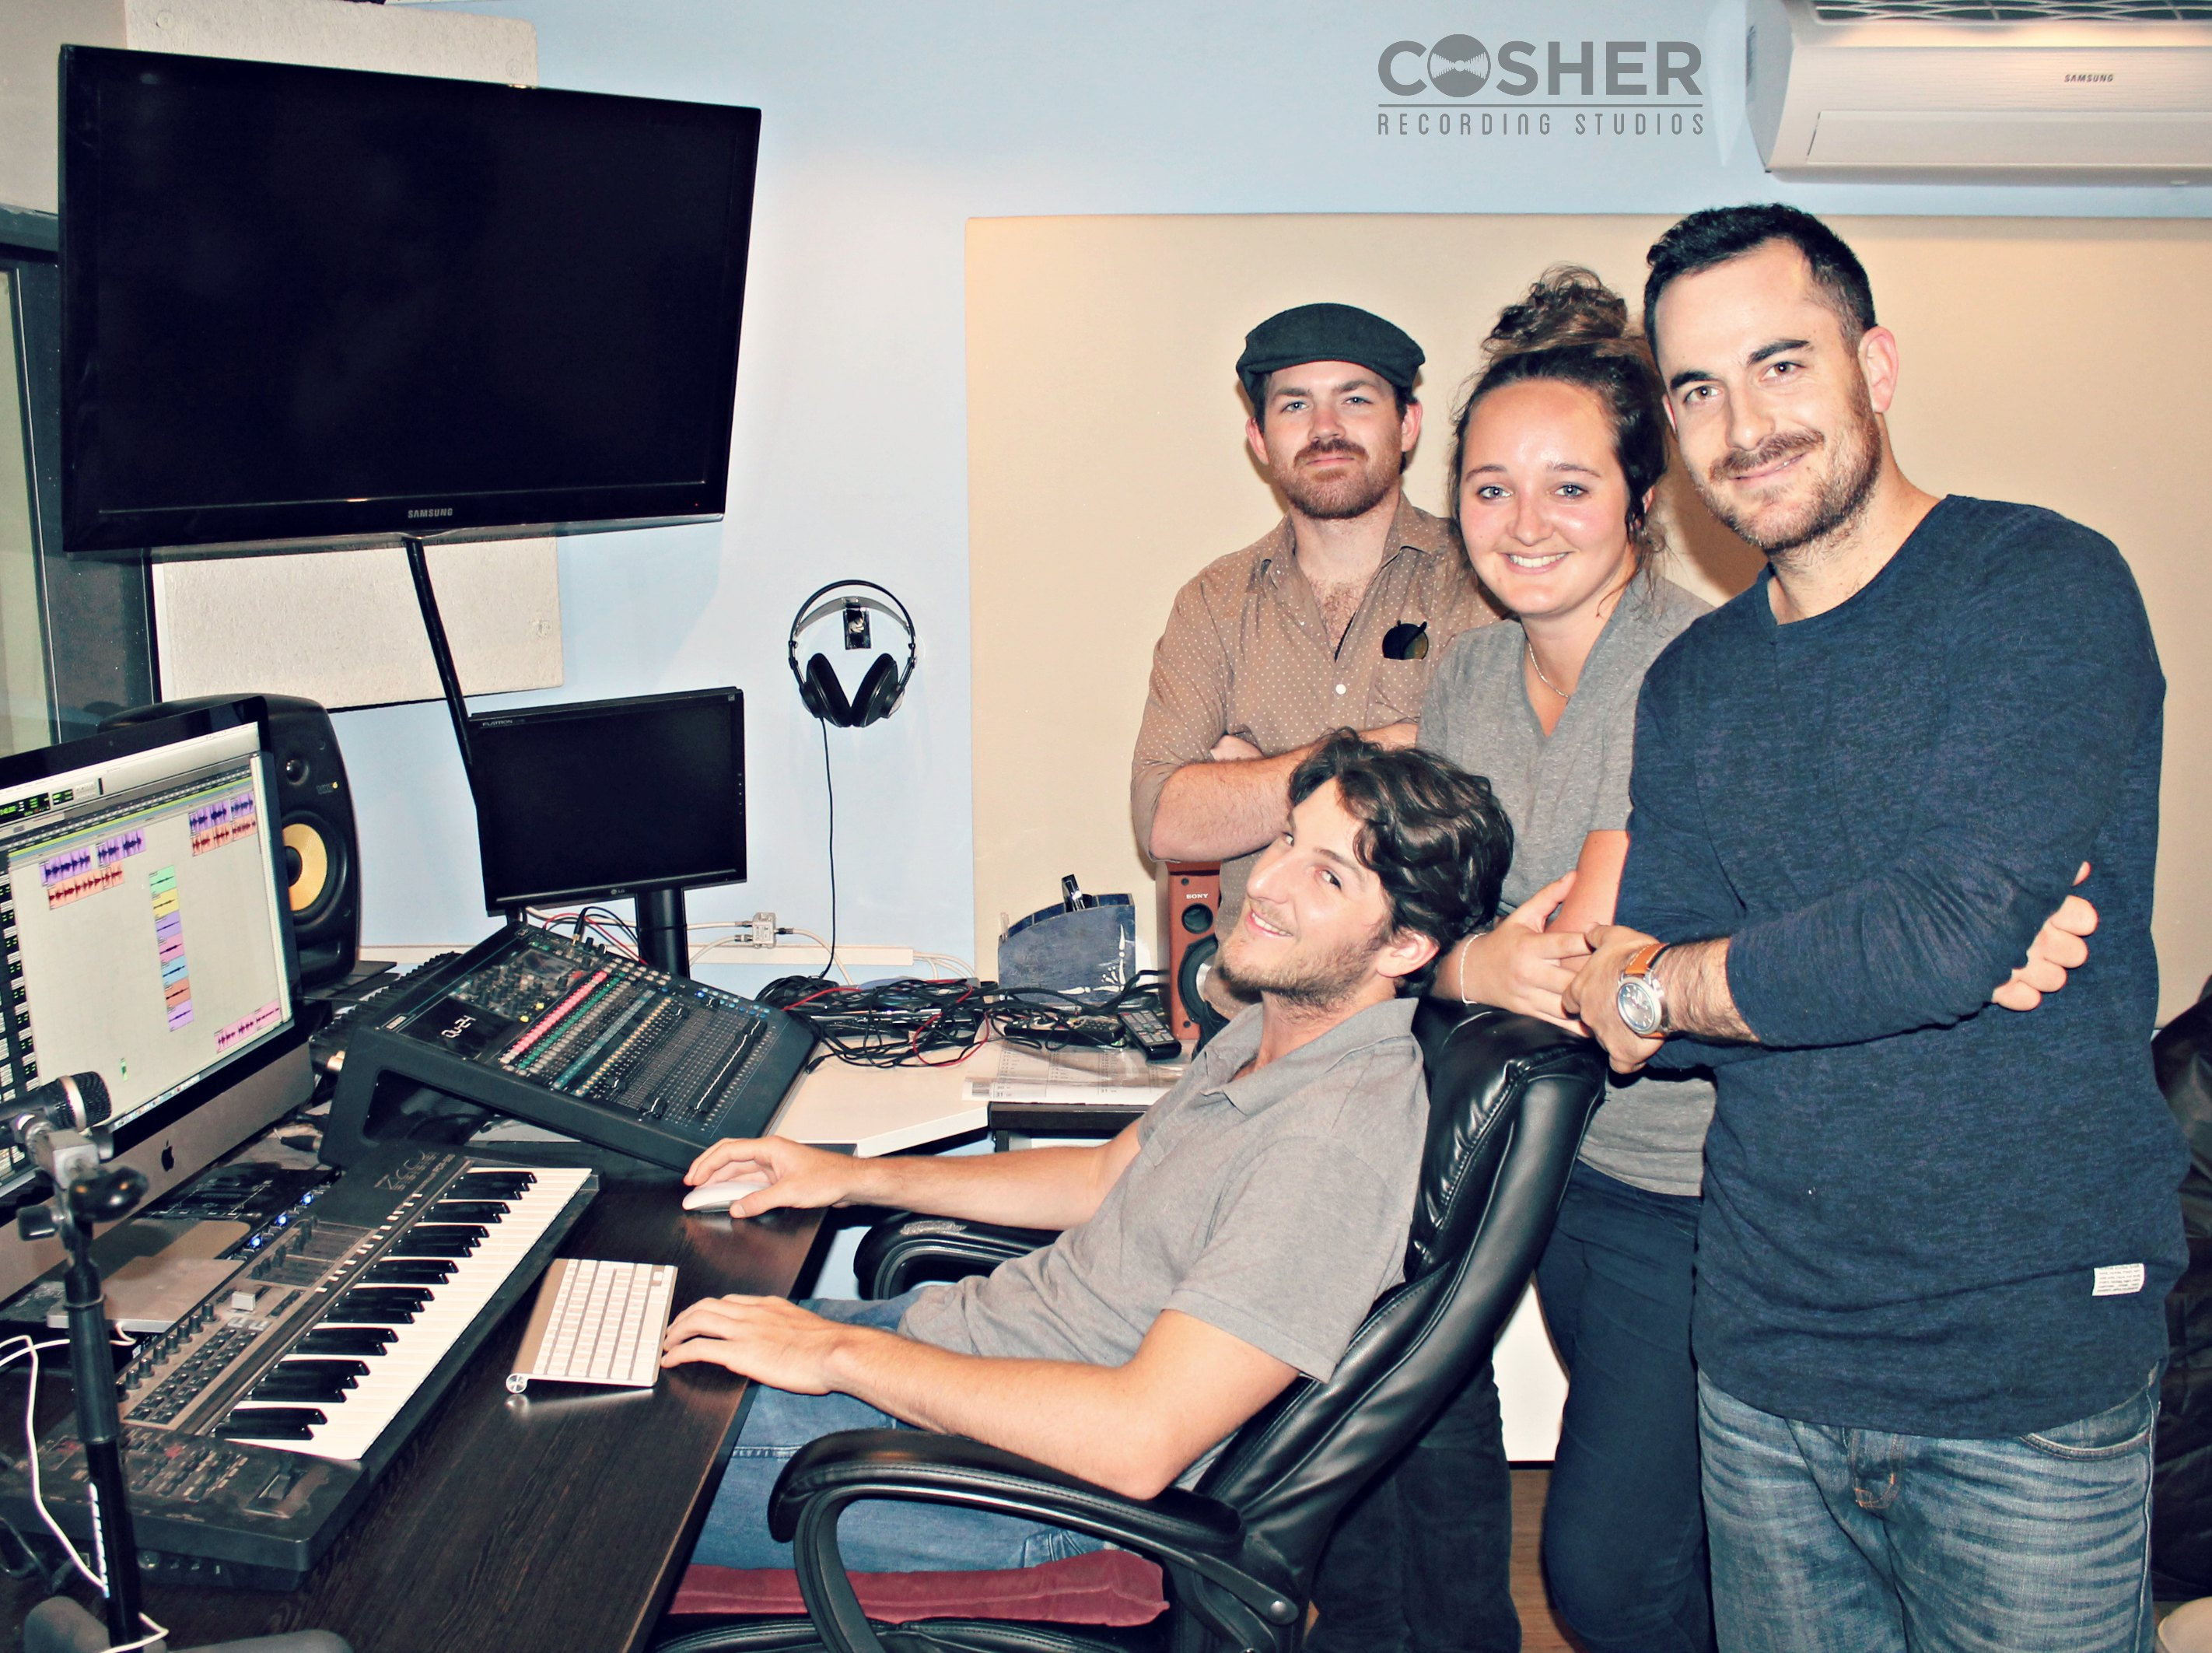 Lize Mynhardt's Debut Single with Producer Cosher